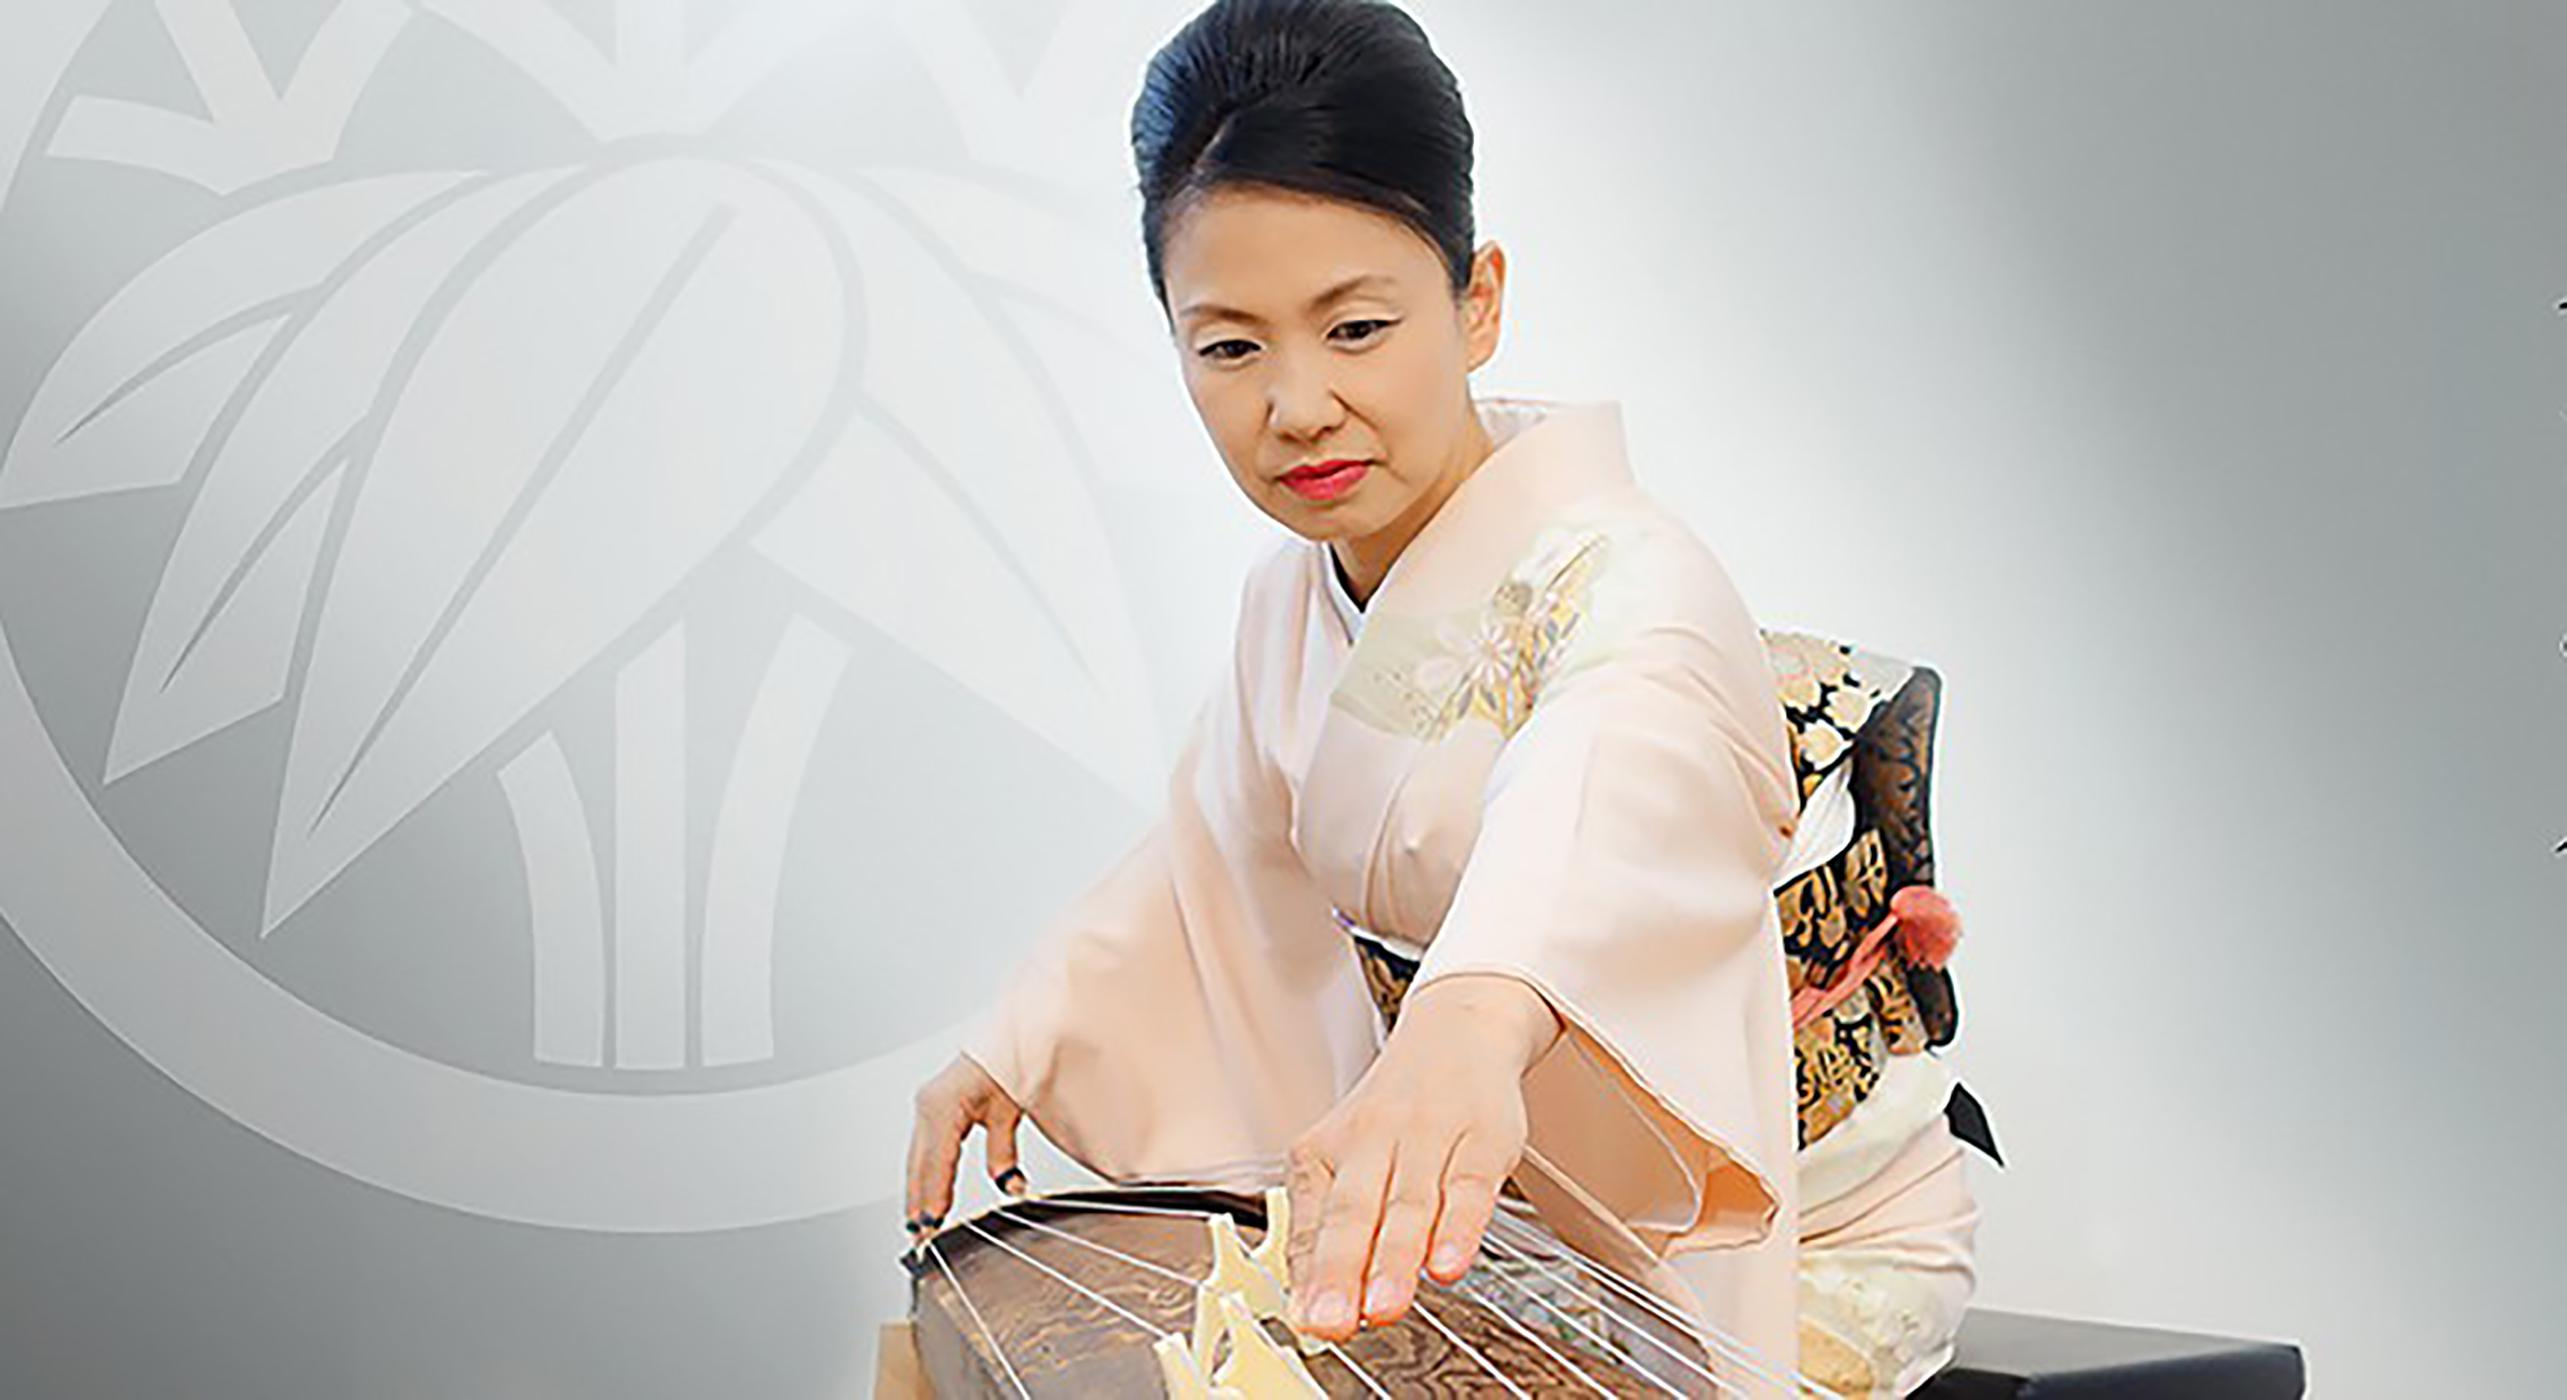 Masayo Ishigure plays a traditional Japanese horizontal harp or zither known as the koto